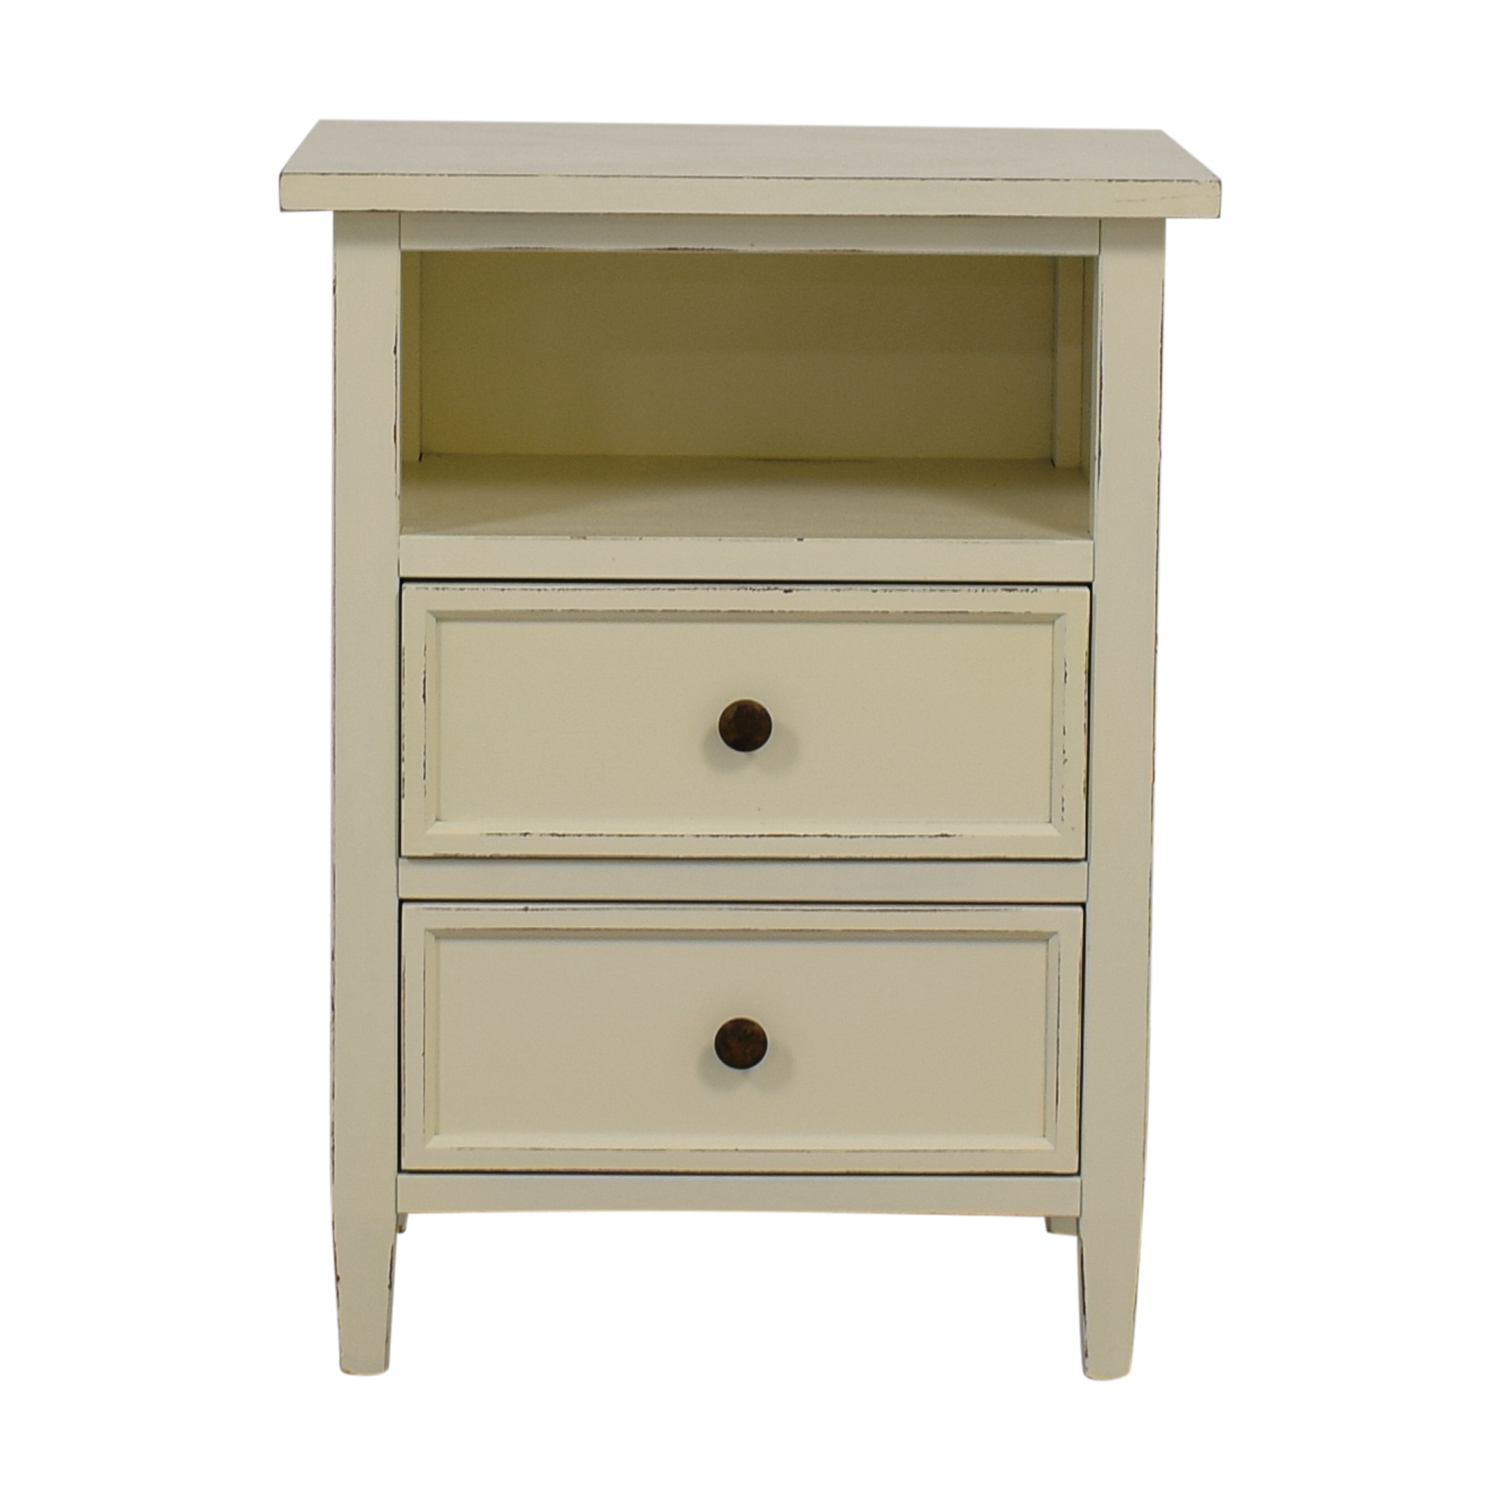 Crate & Barrel Crate & Barrel Harbor Dama White Two-Drawer Nightstand Sofas